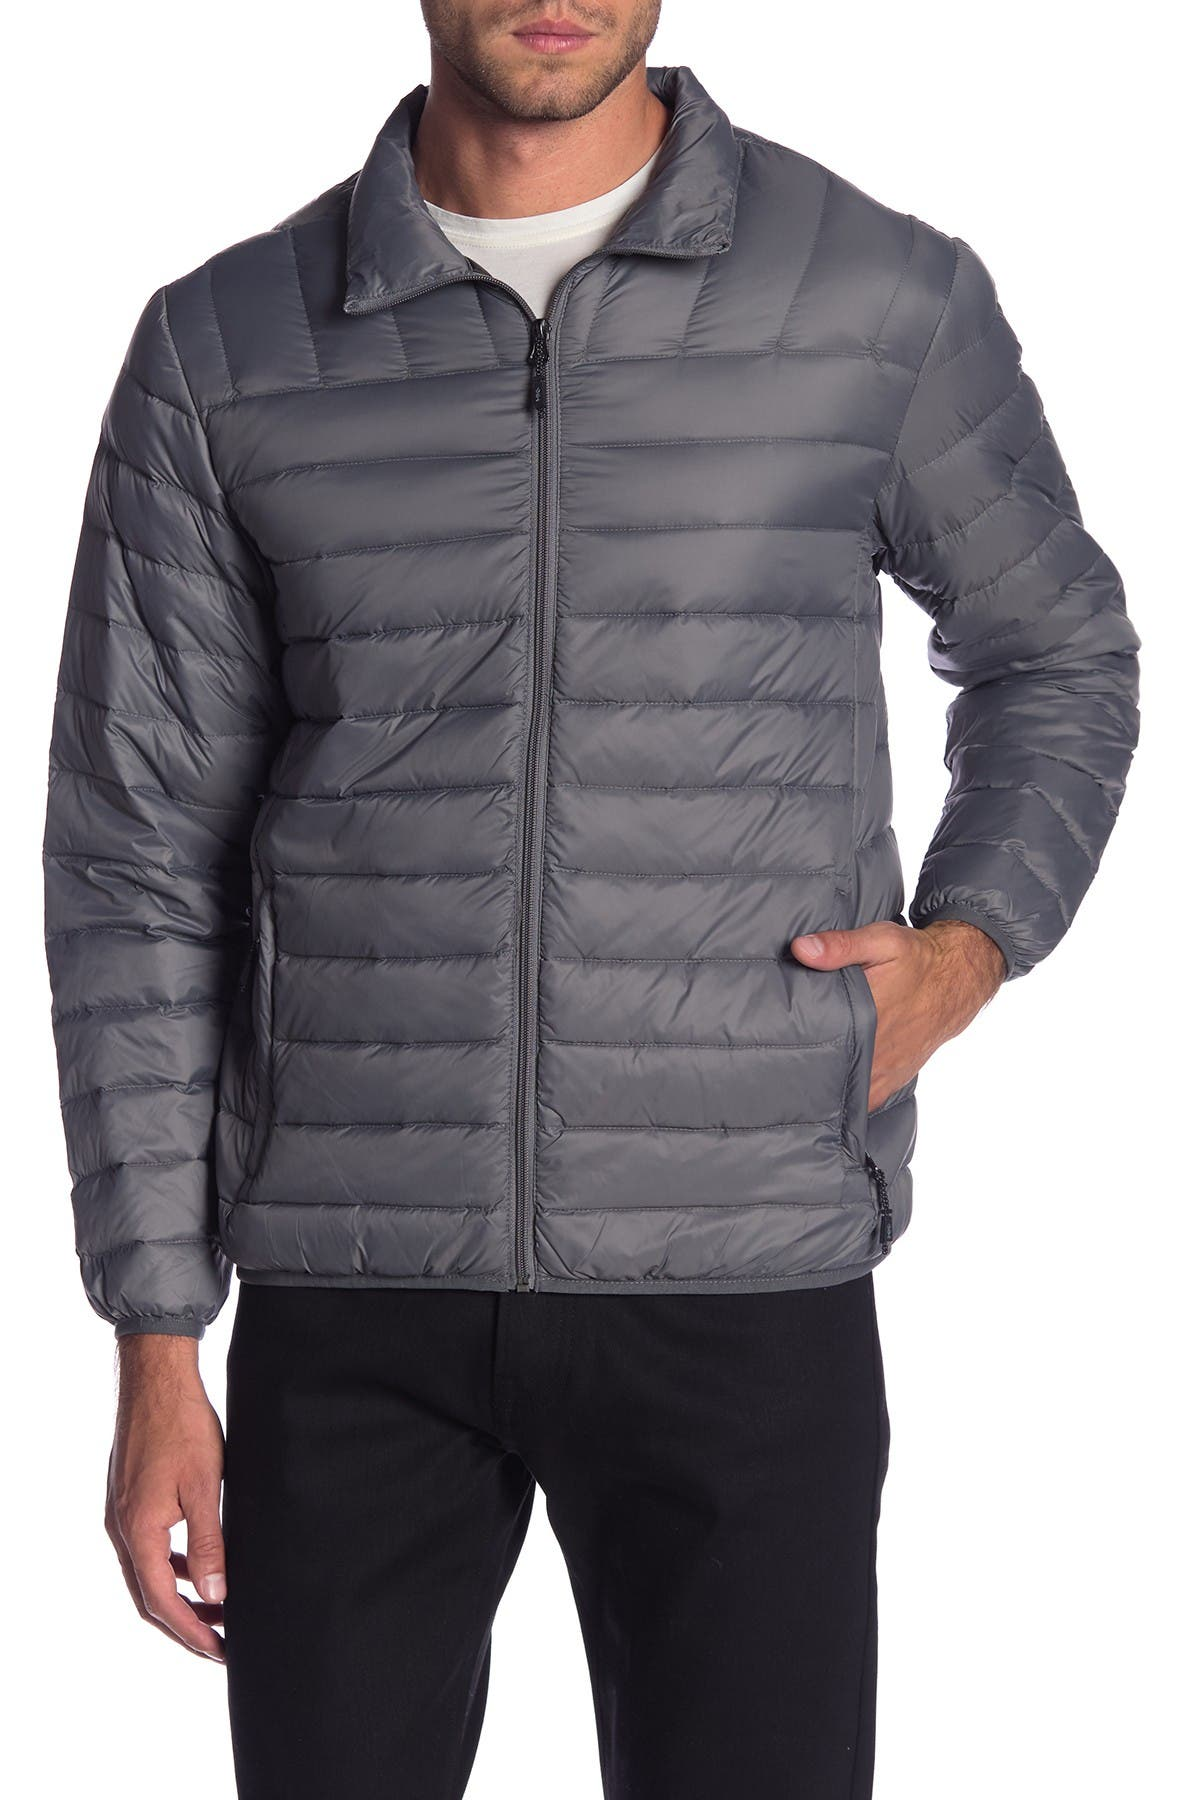 Image of Hawke & Co. Quilted Packable Nylon Jacket